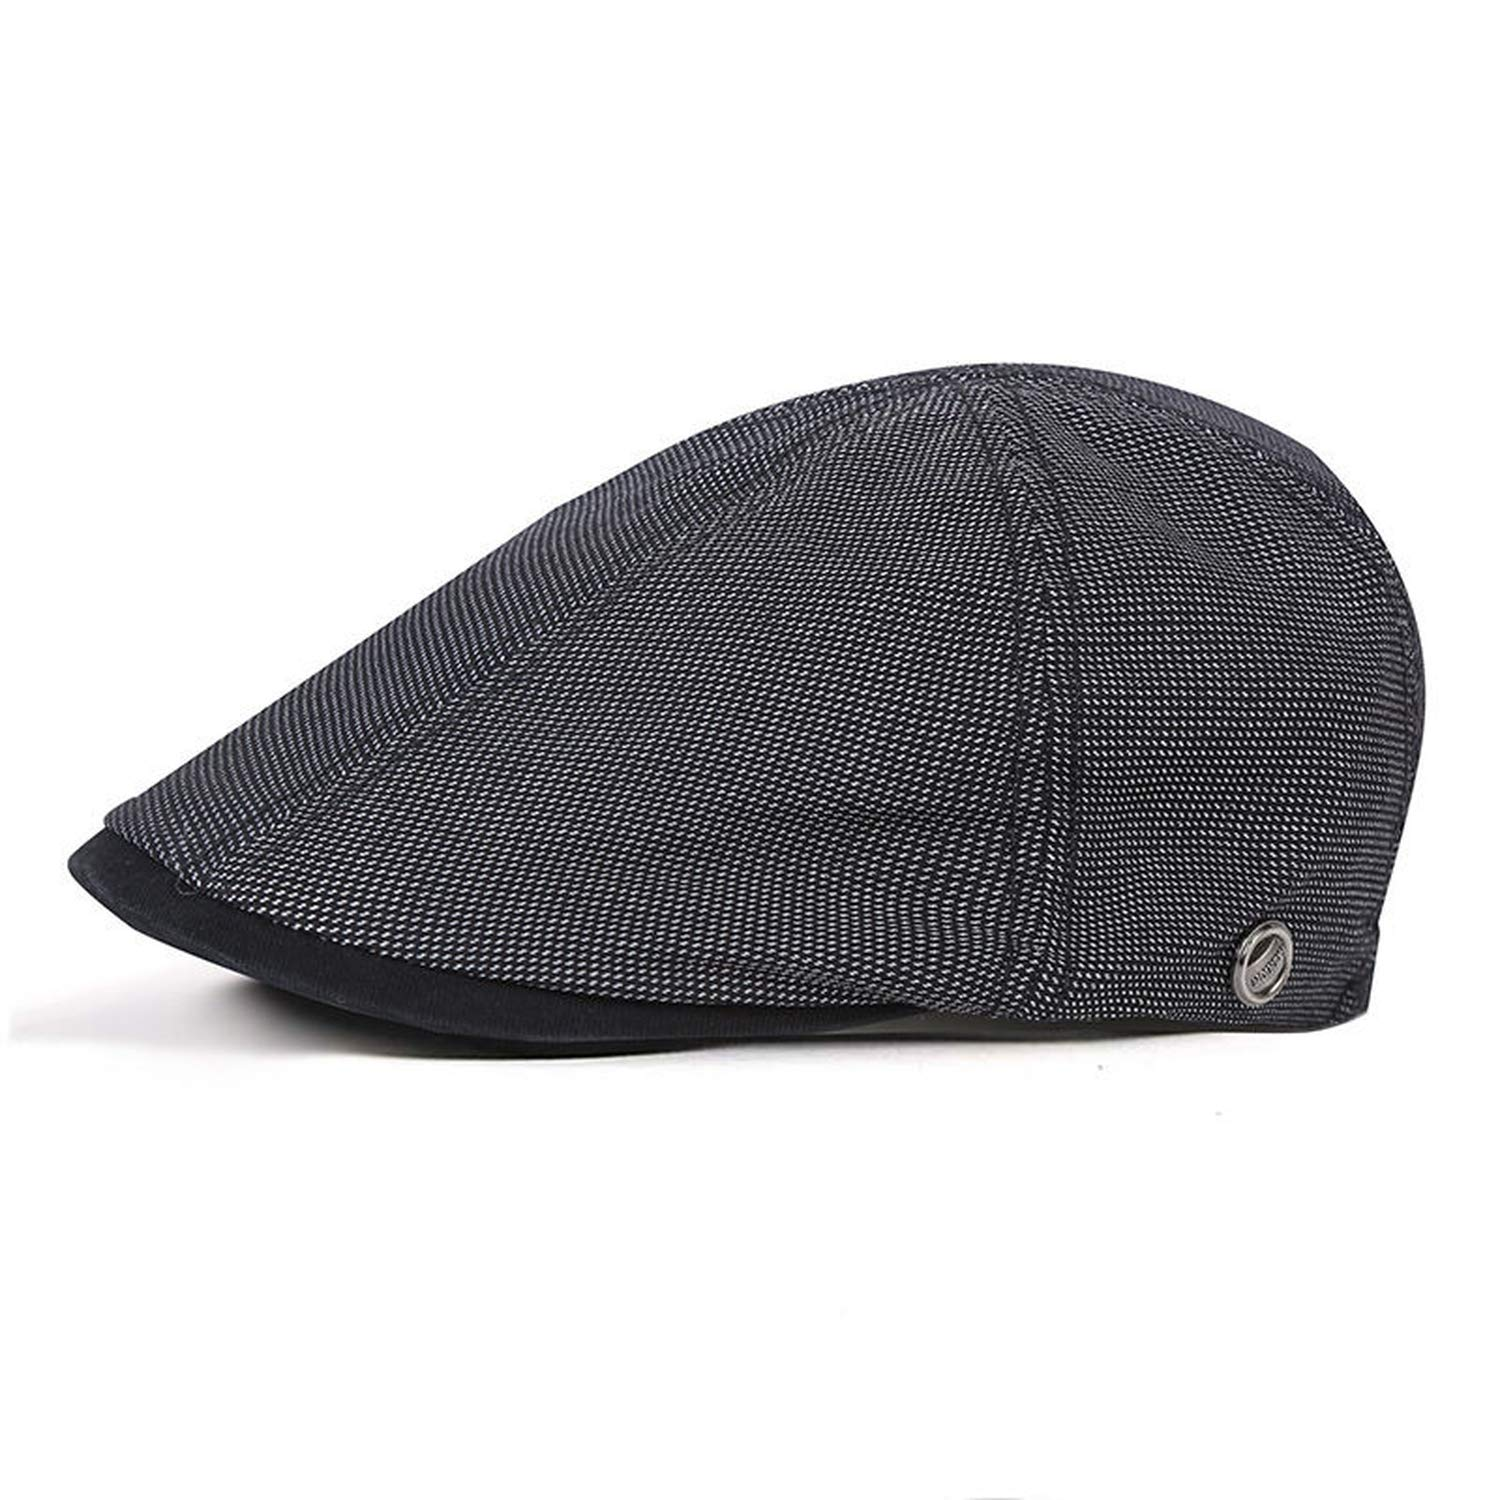 ANDERDM 2019 New Washed Cotton Newsboy Caps French Style Cabbie Flatcap Spring Summer Men Womens Berets Cap